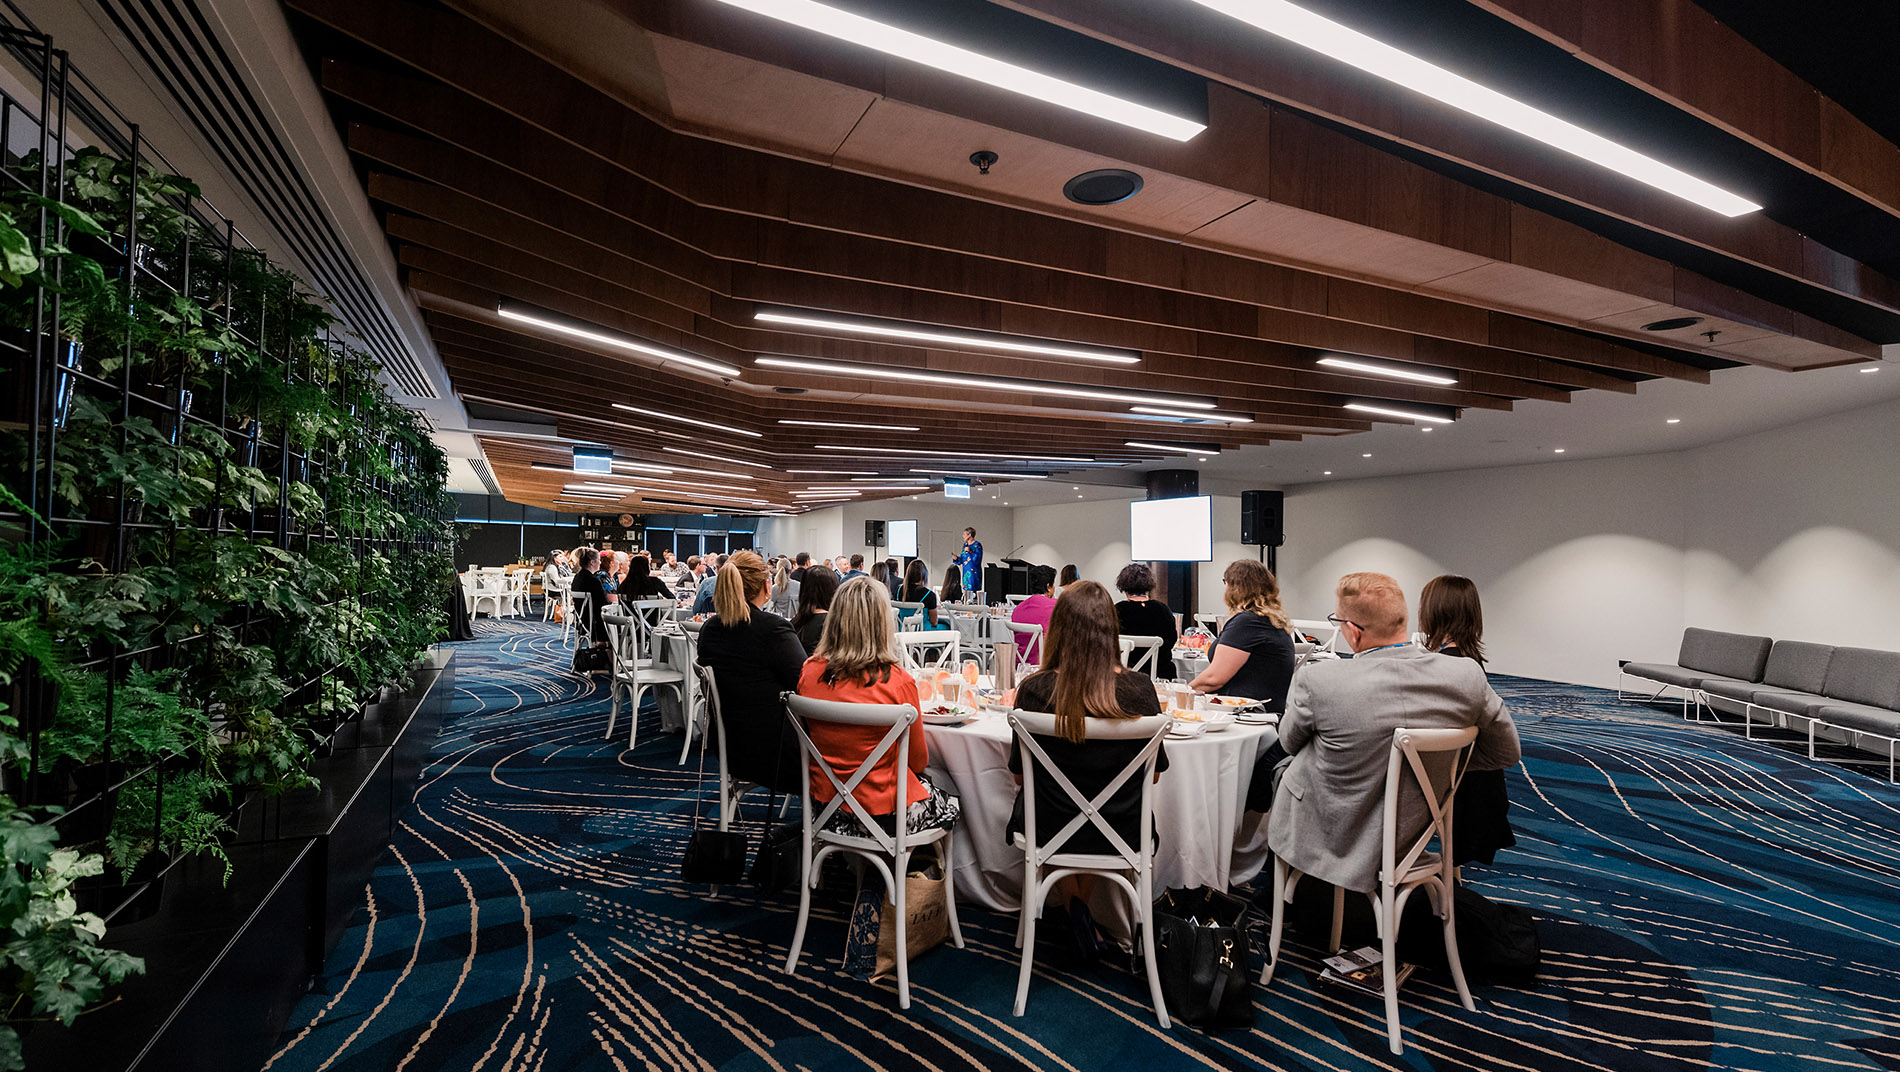 https://rfacdn.nz/conventions/assets/media/home-page-hero-image-0000-limelight-rooms-banquet-style.jpg